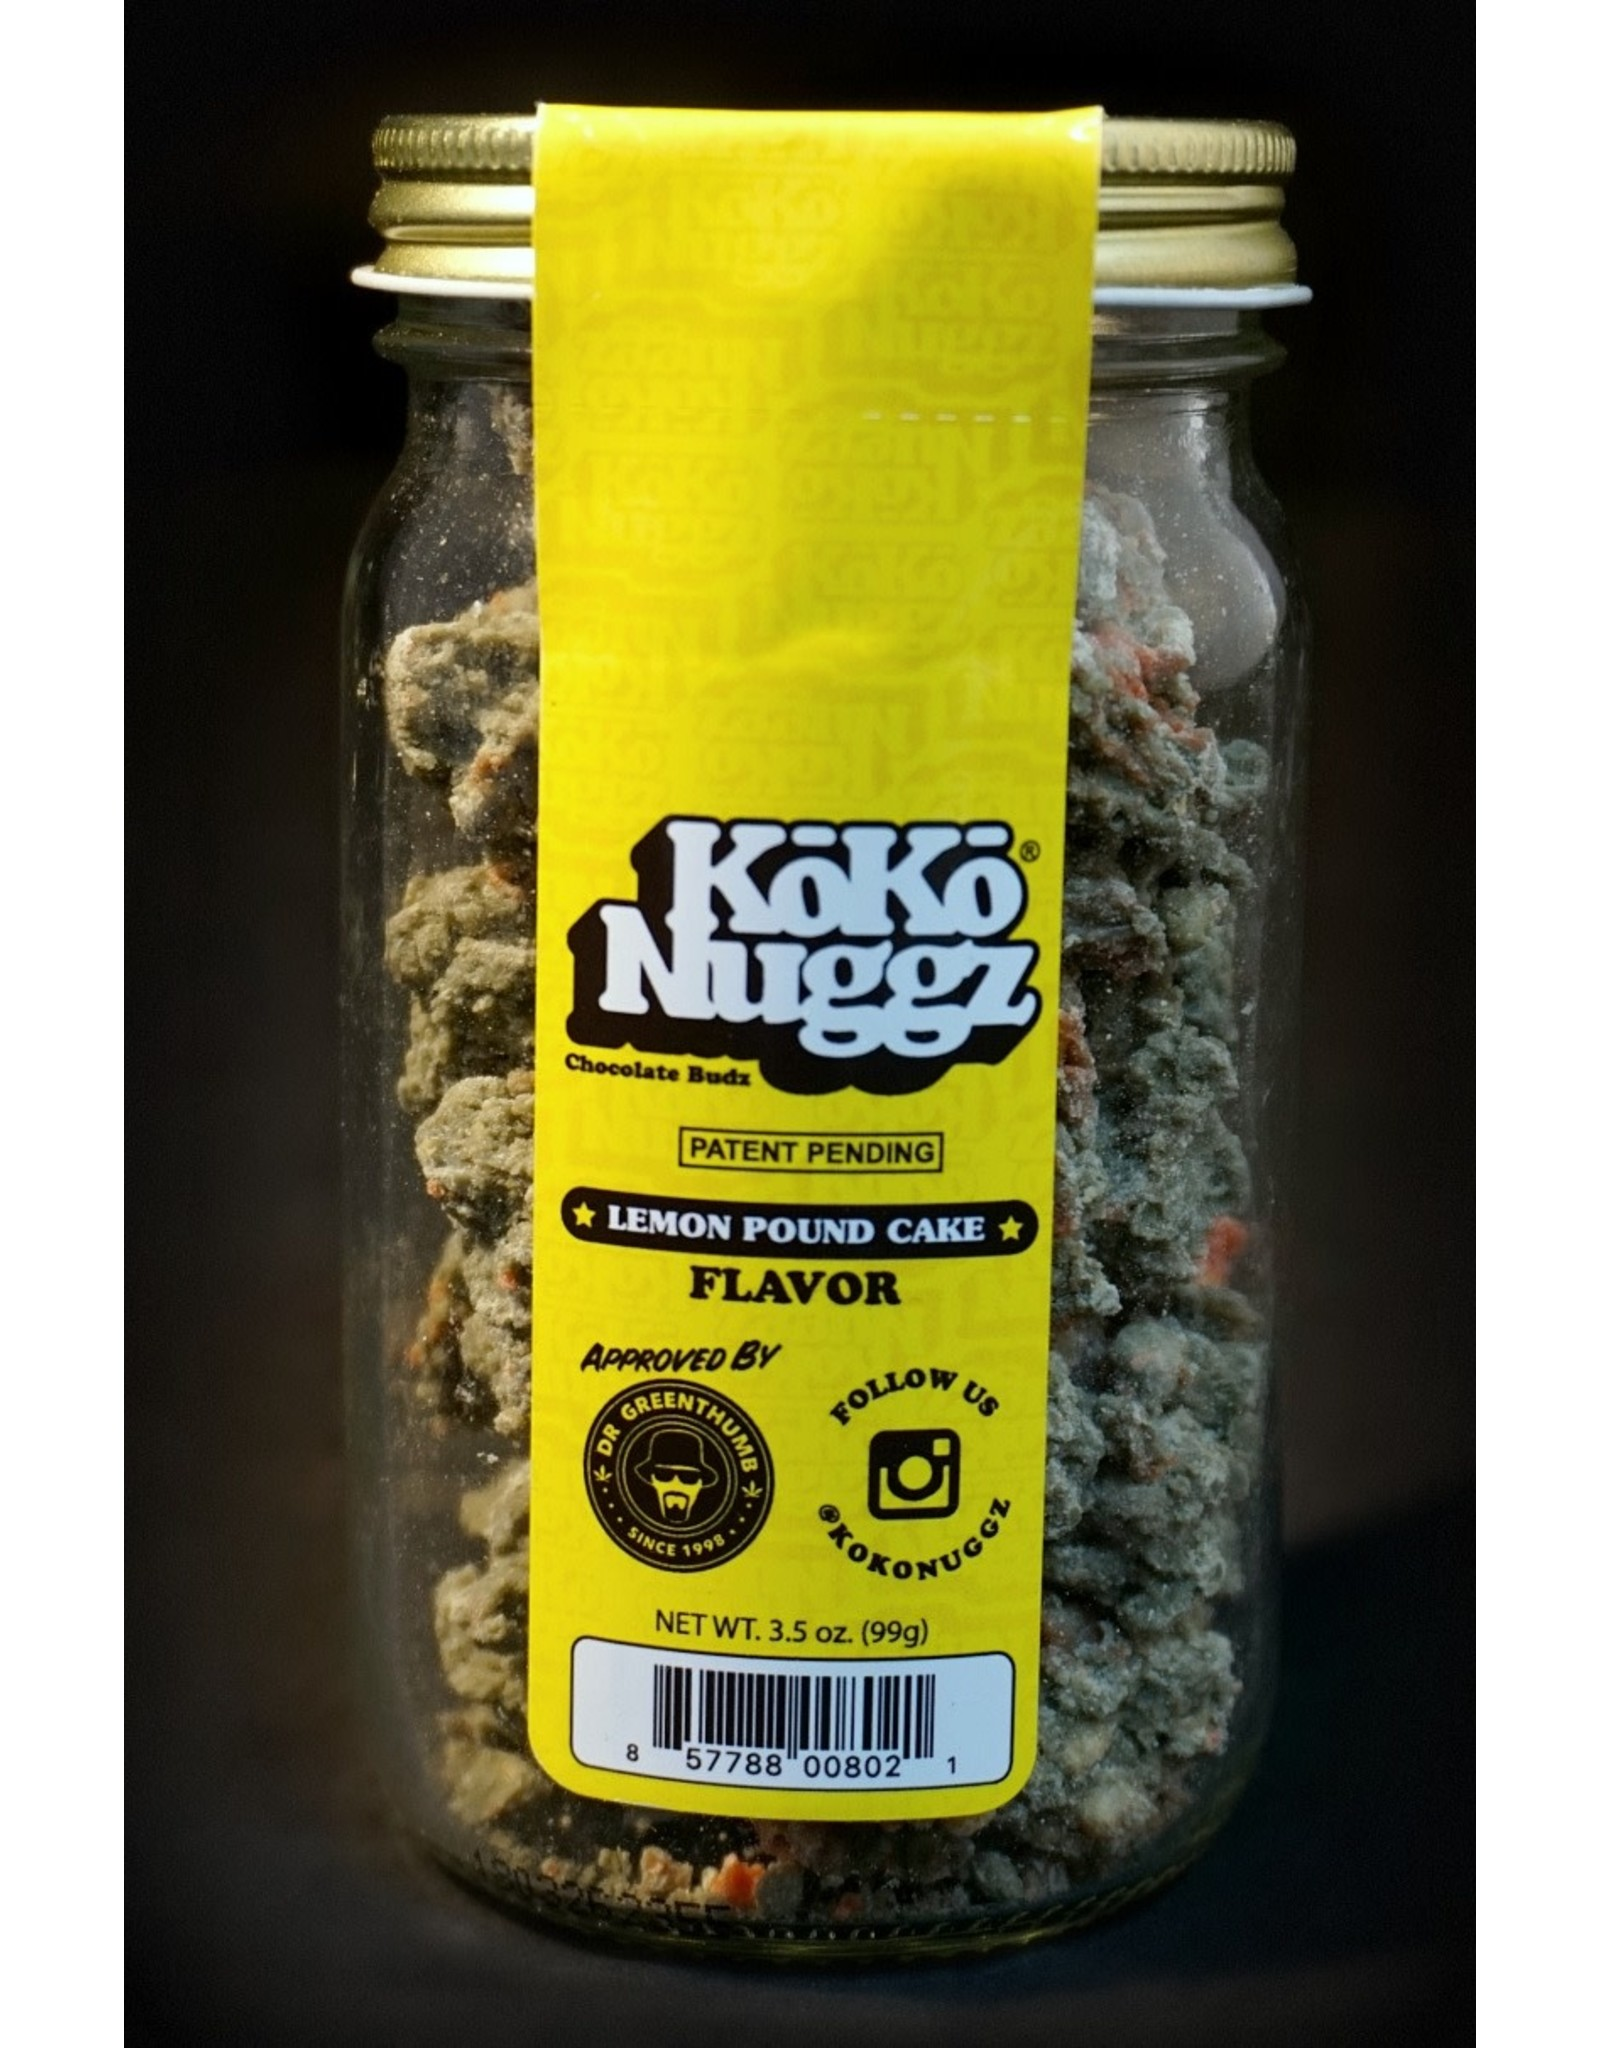 Koko Nuggz Koko Nuggz 3.5oz Jar - Lemon Pound Cake